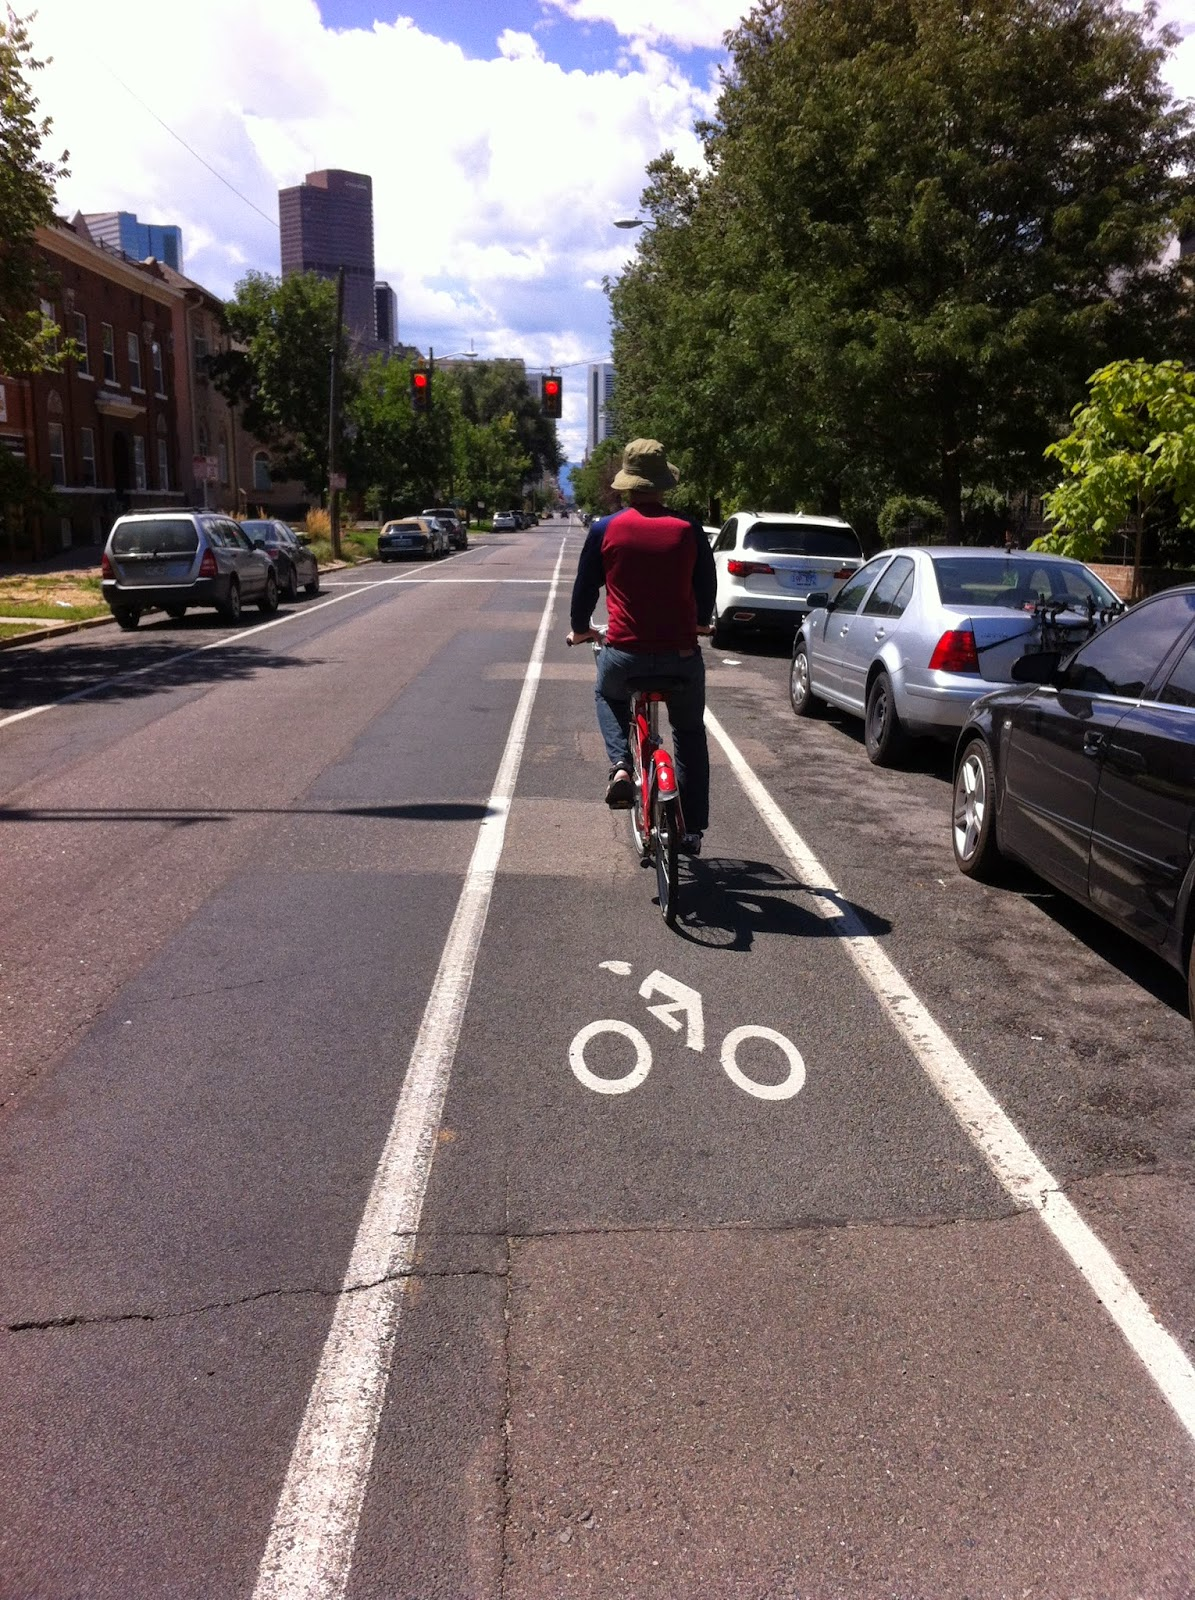 Champa St bike lane